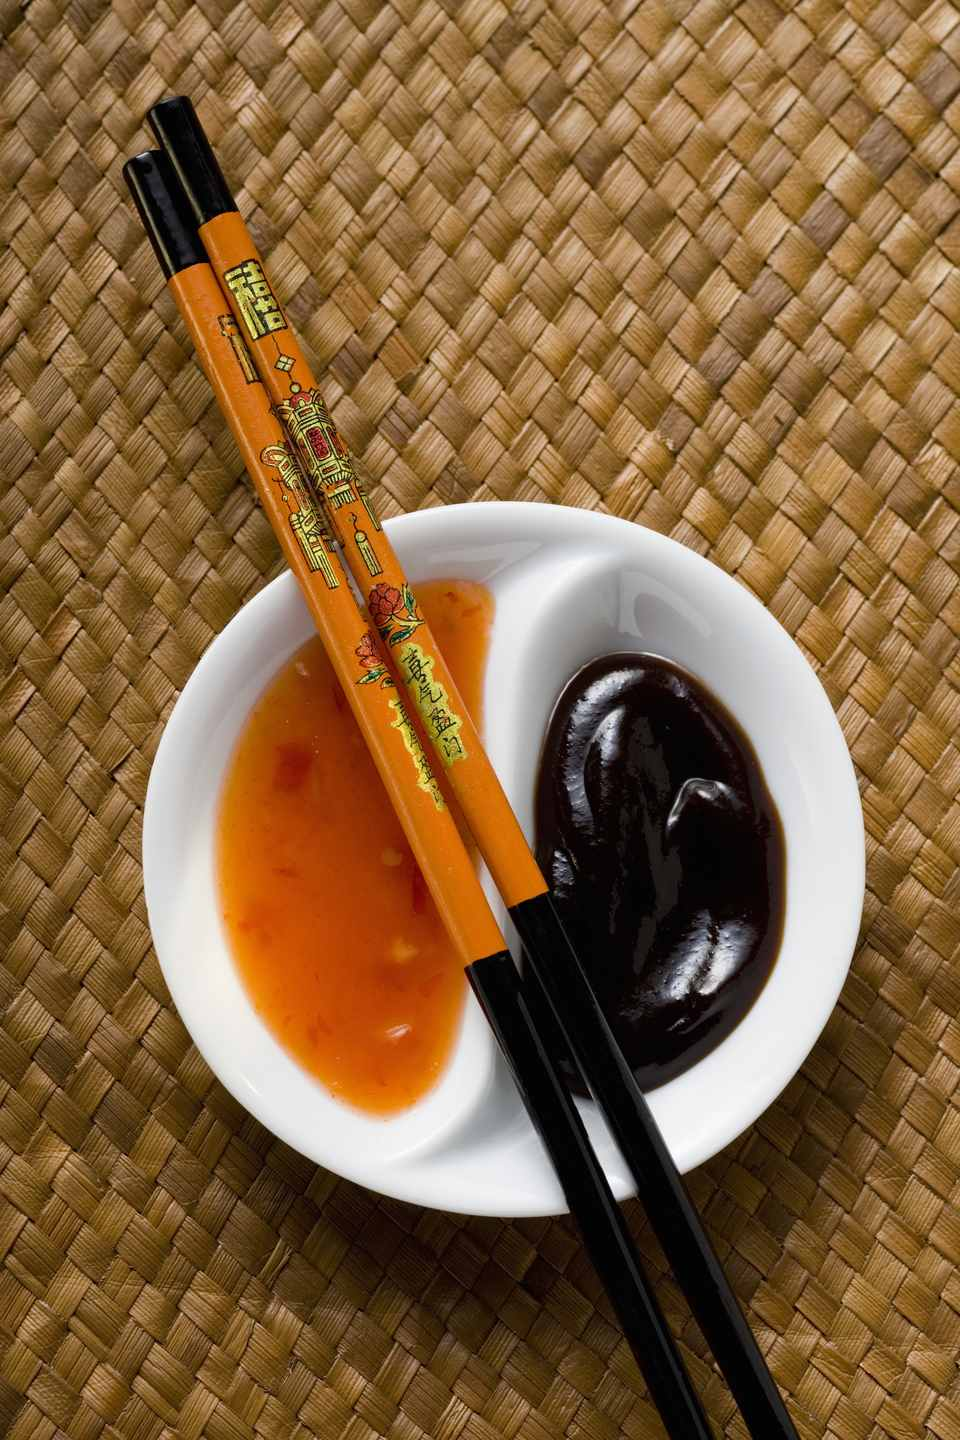 Hoisin sauce and sweet and sour chili sauce